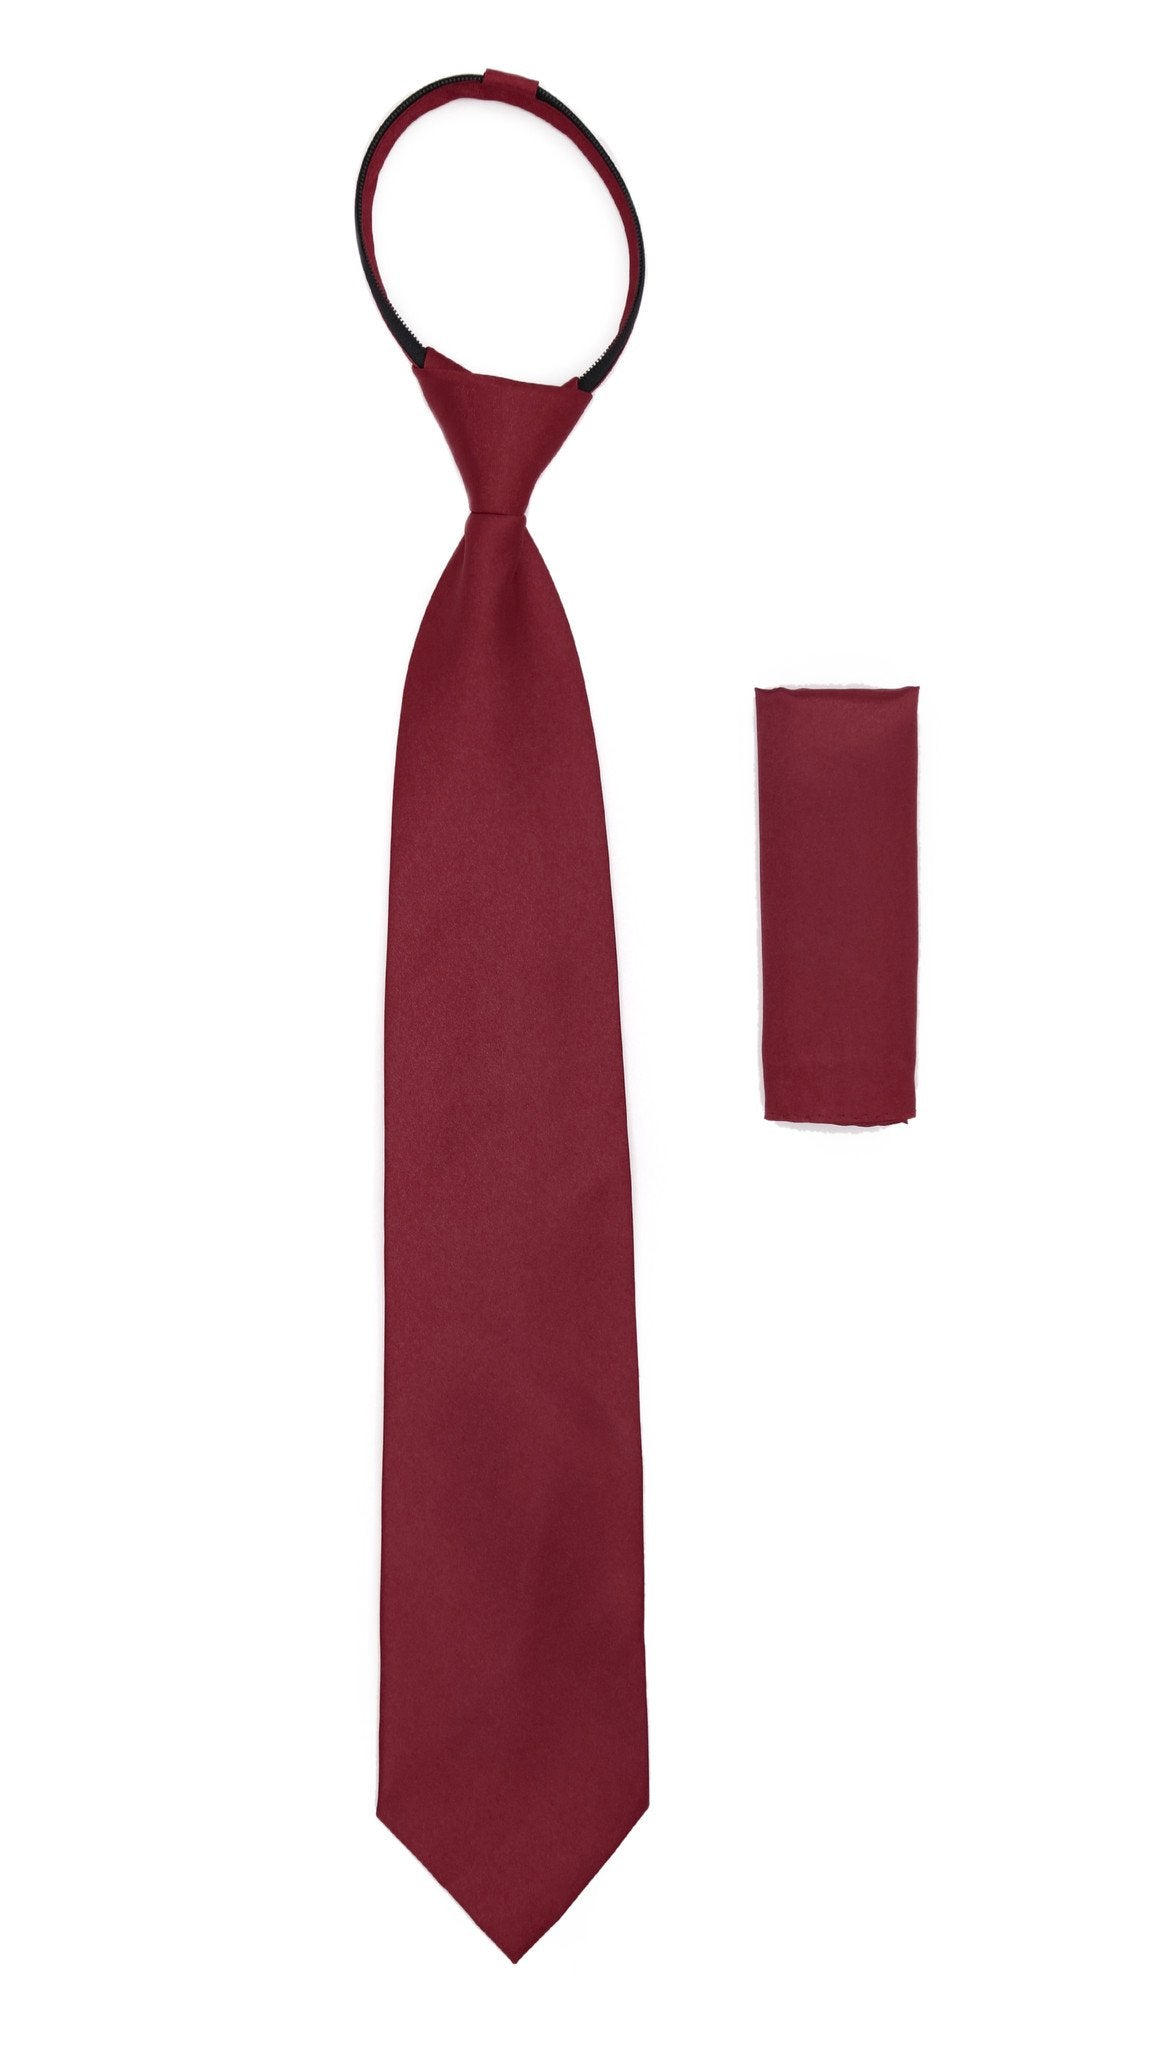 Satine Burgundy Zipper Tie with Hankie Set - Giorgio's Menswear